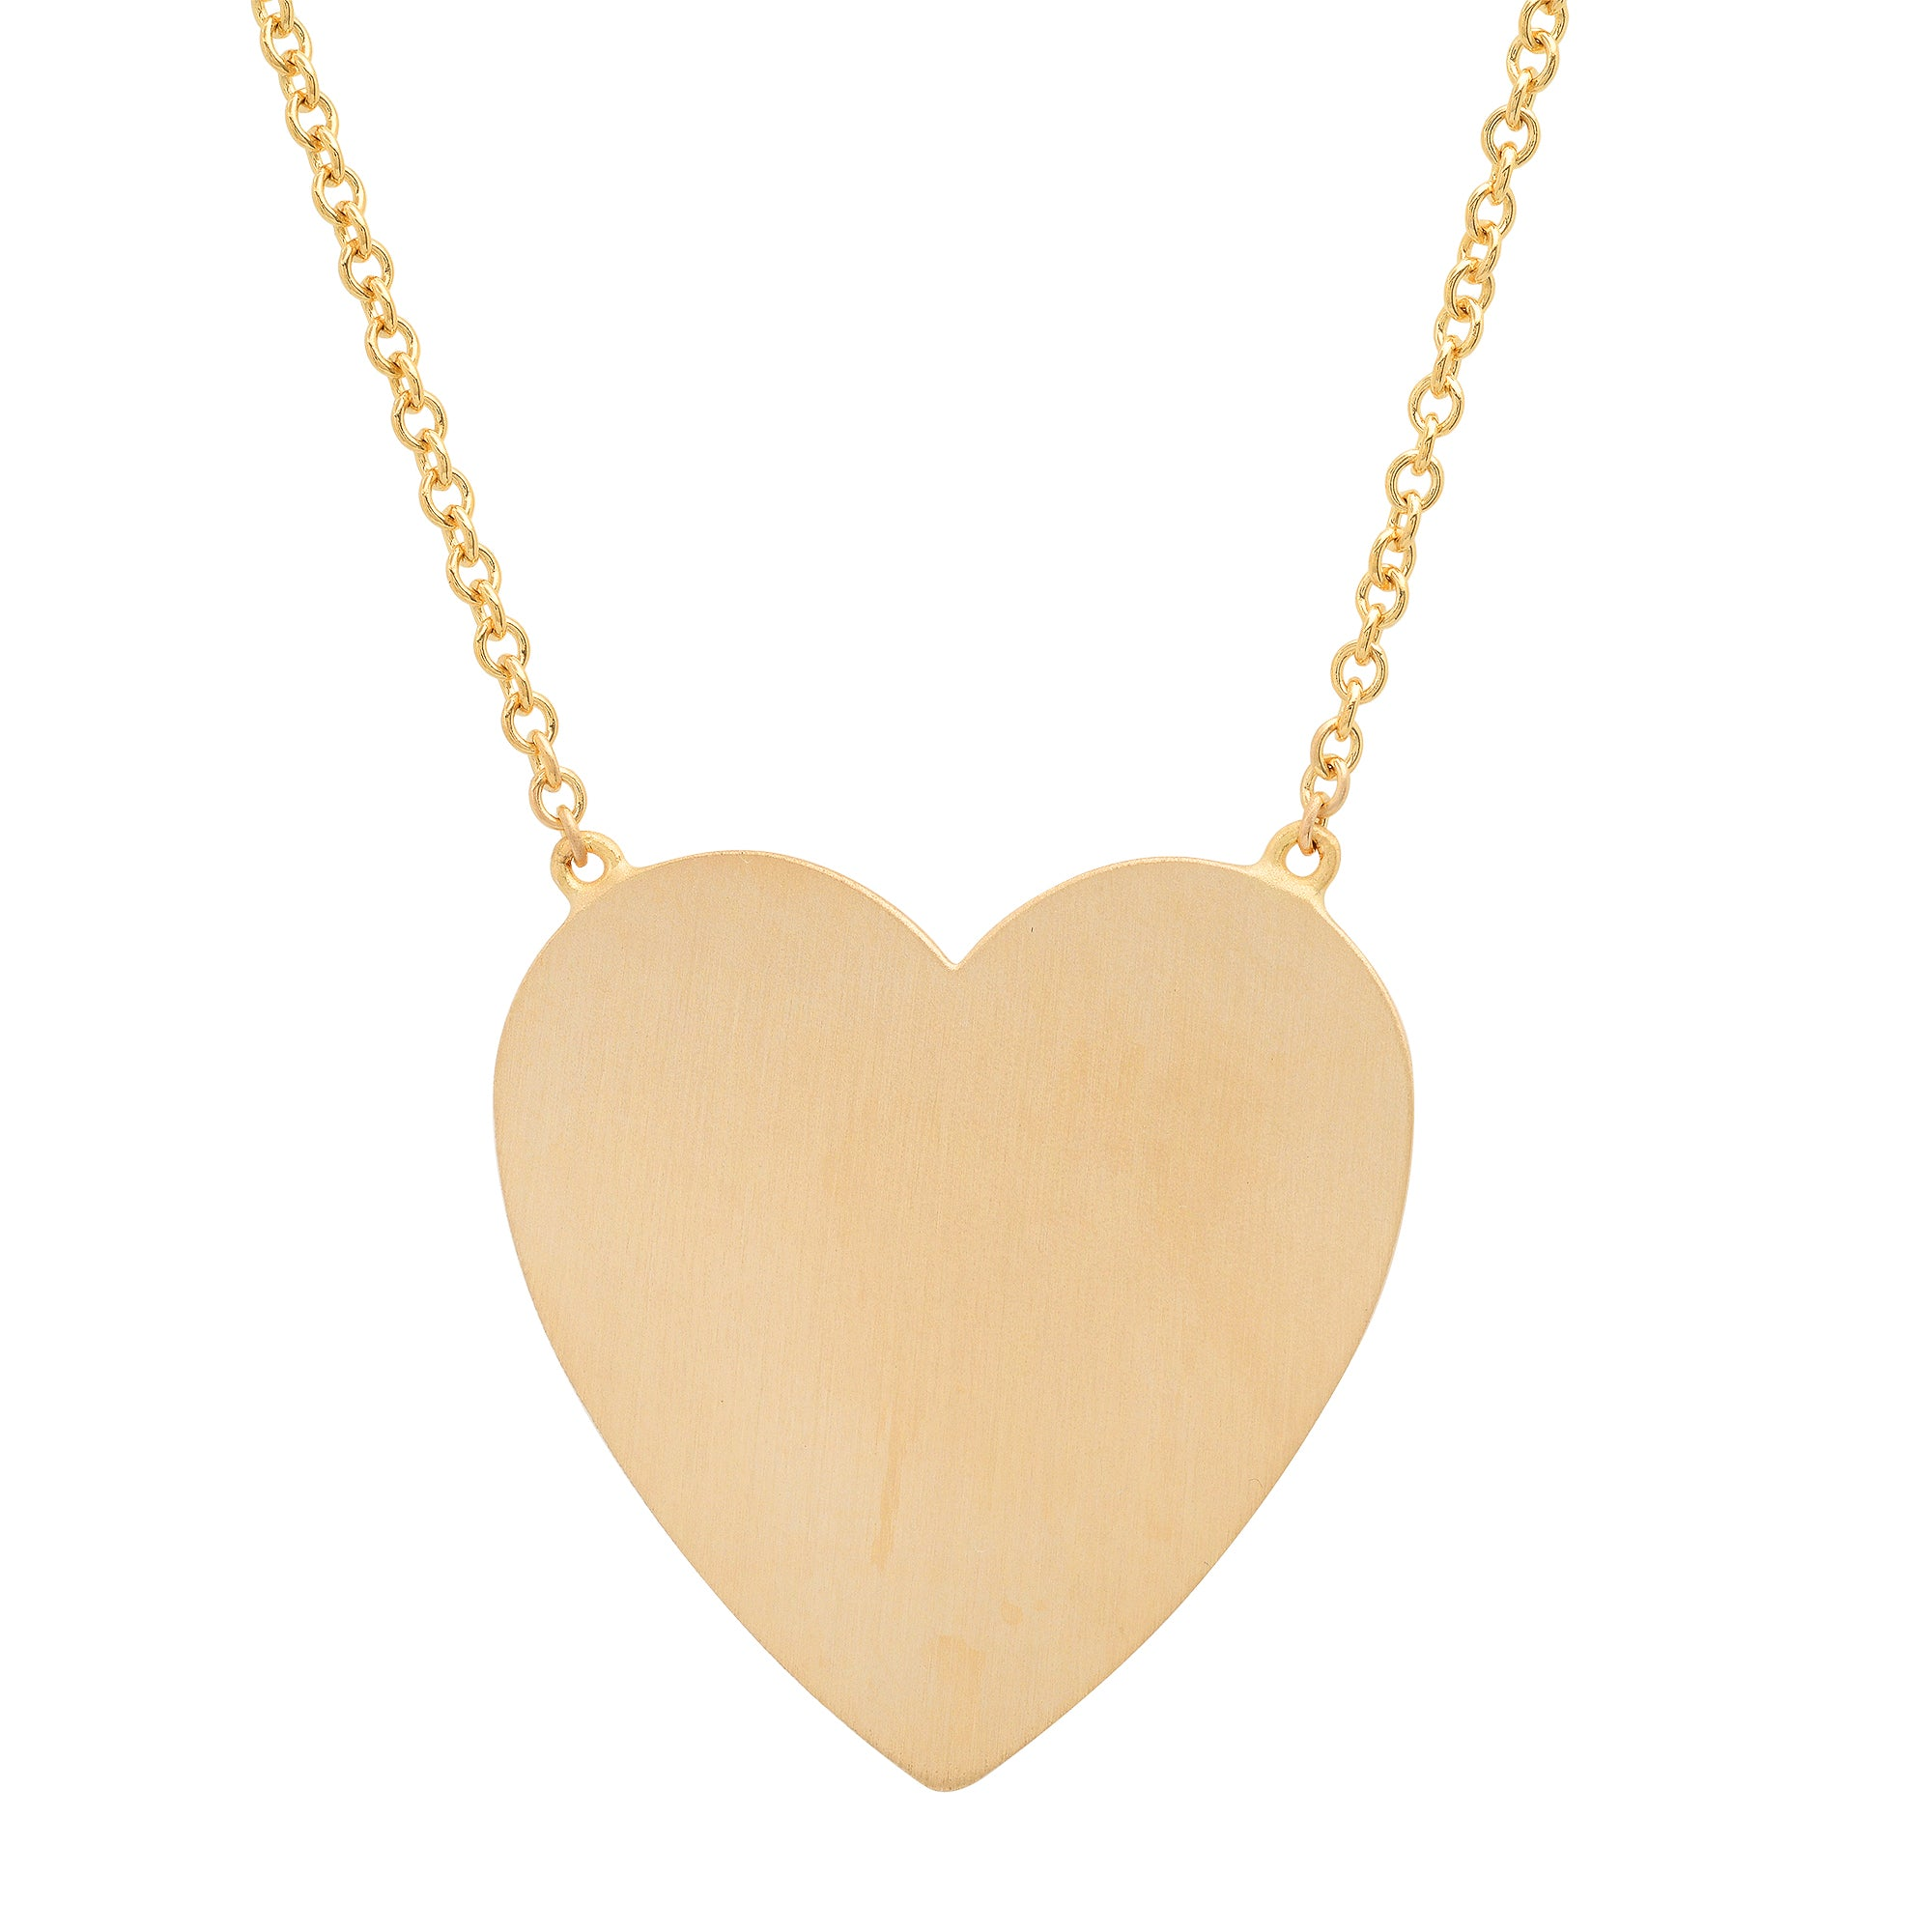 MS X SRJ Large Heart Necklace